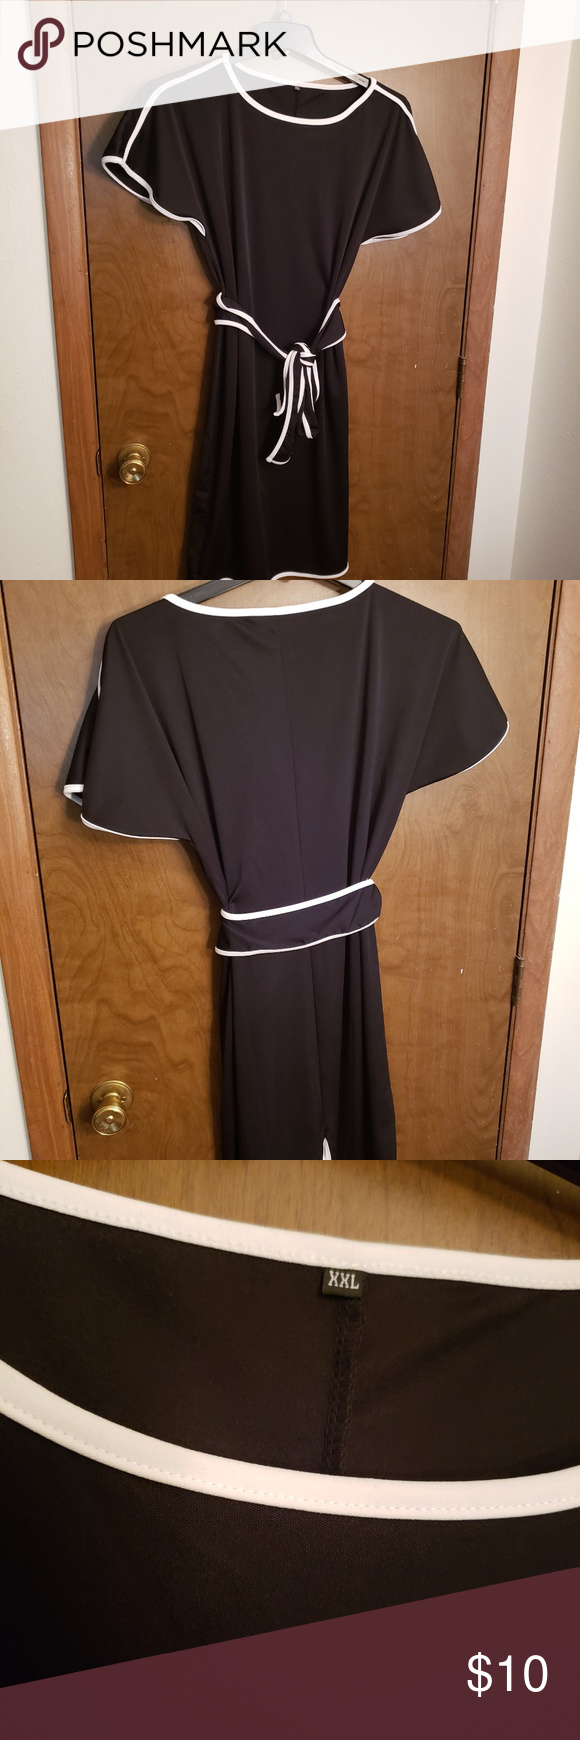 Black Dress With White Trim This Is A Close Fitting Dress With A Split In The Back It Comes To The Knees And Can Be Worn To W Black Dress White [ 1740 x 580 Pixel ]